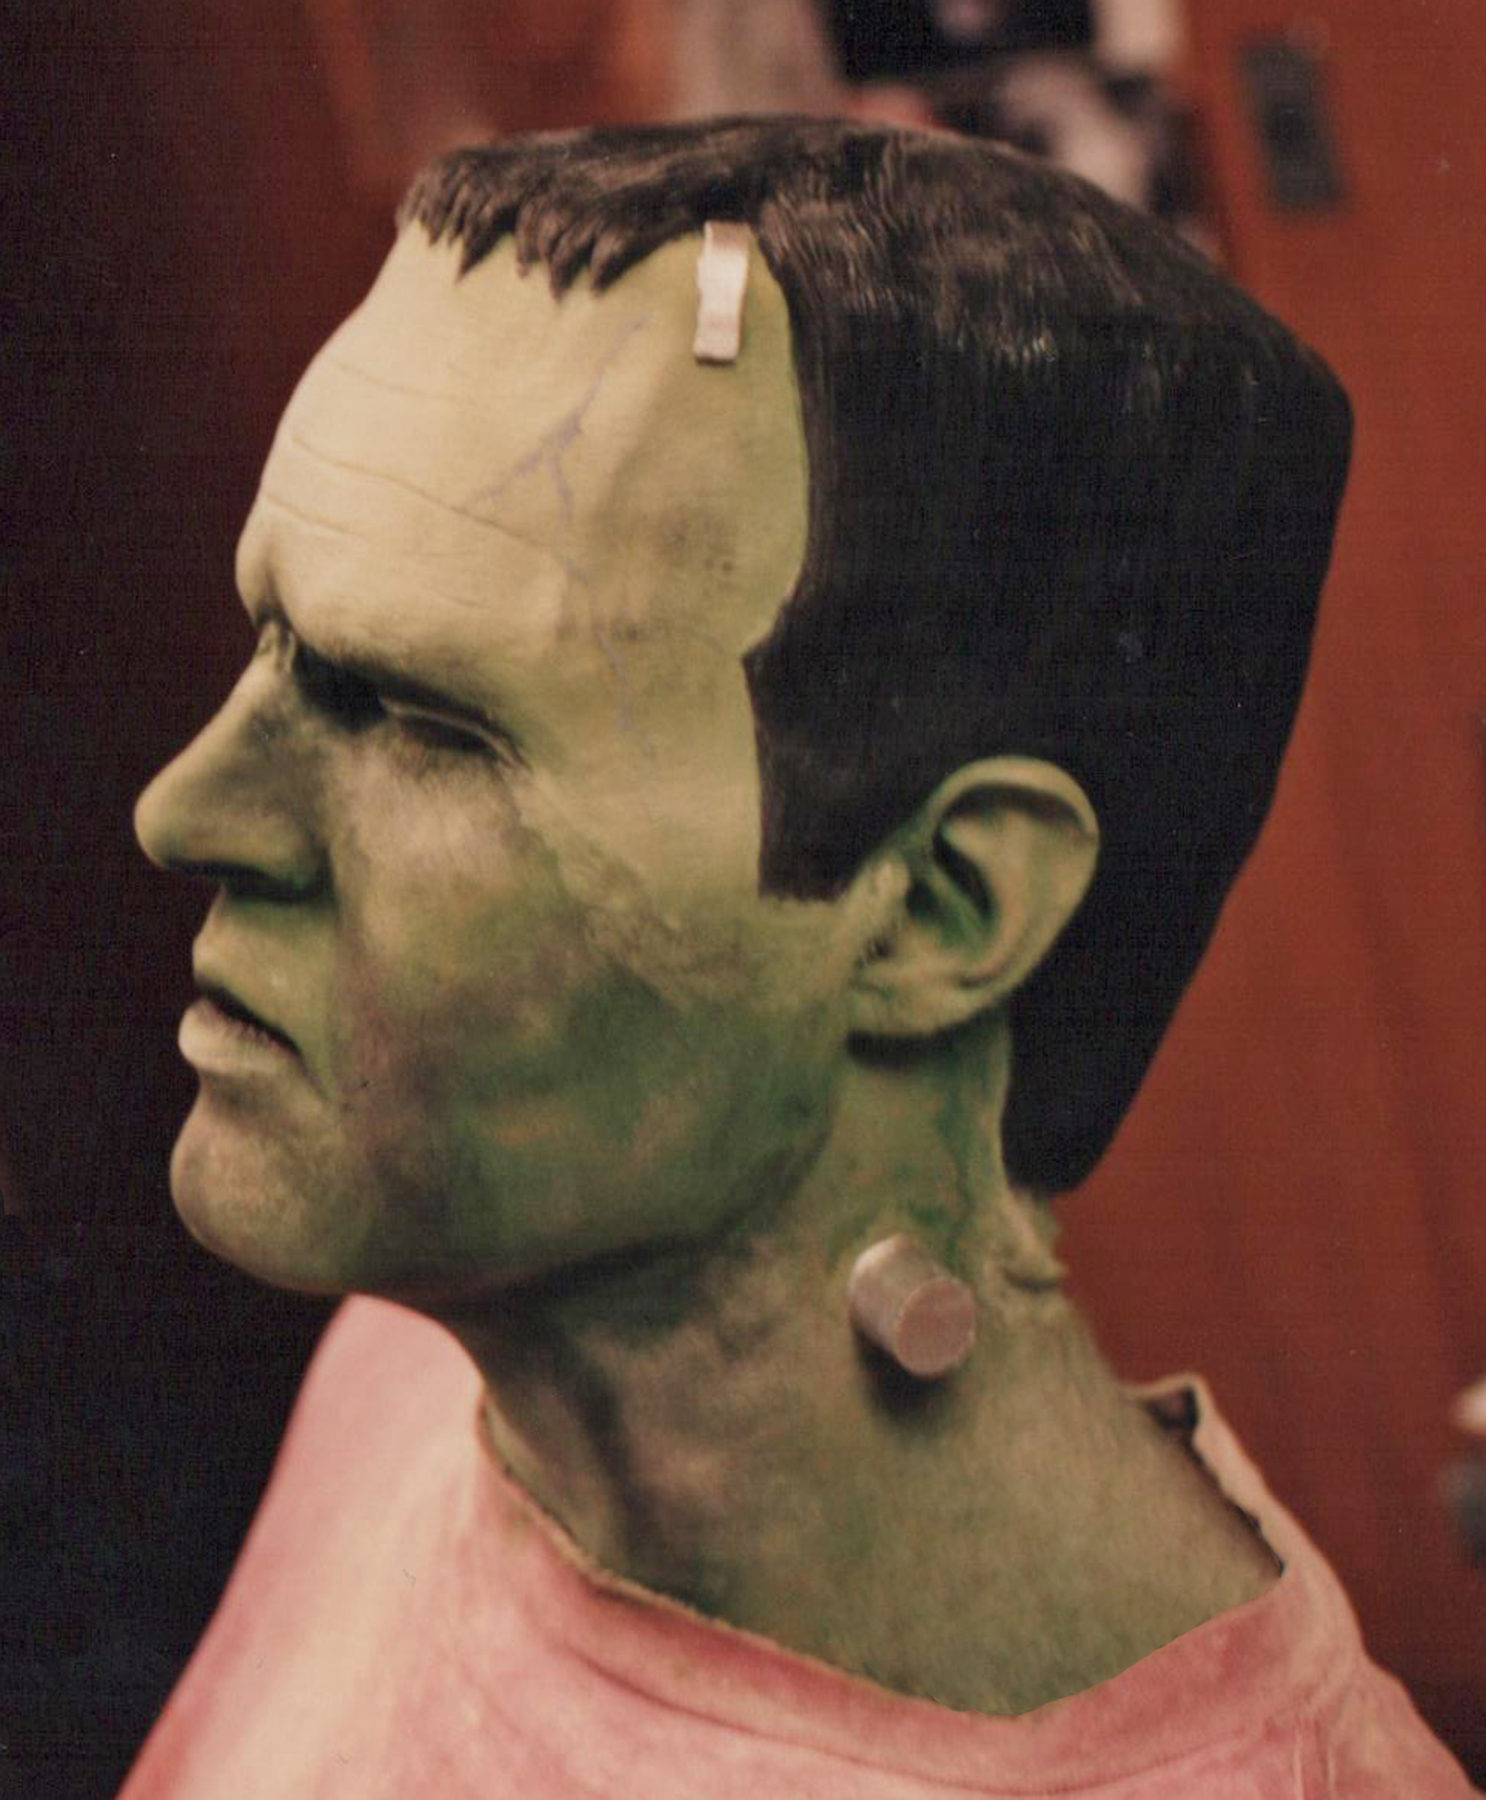 Frankenstein latex head piece applied and made up.